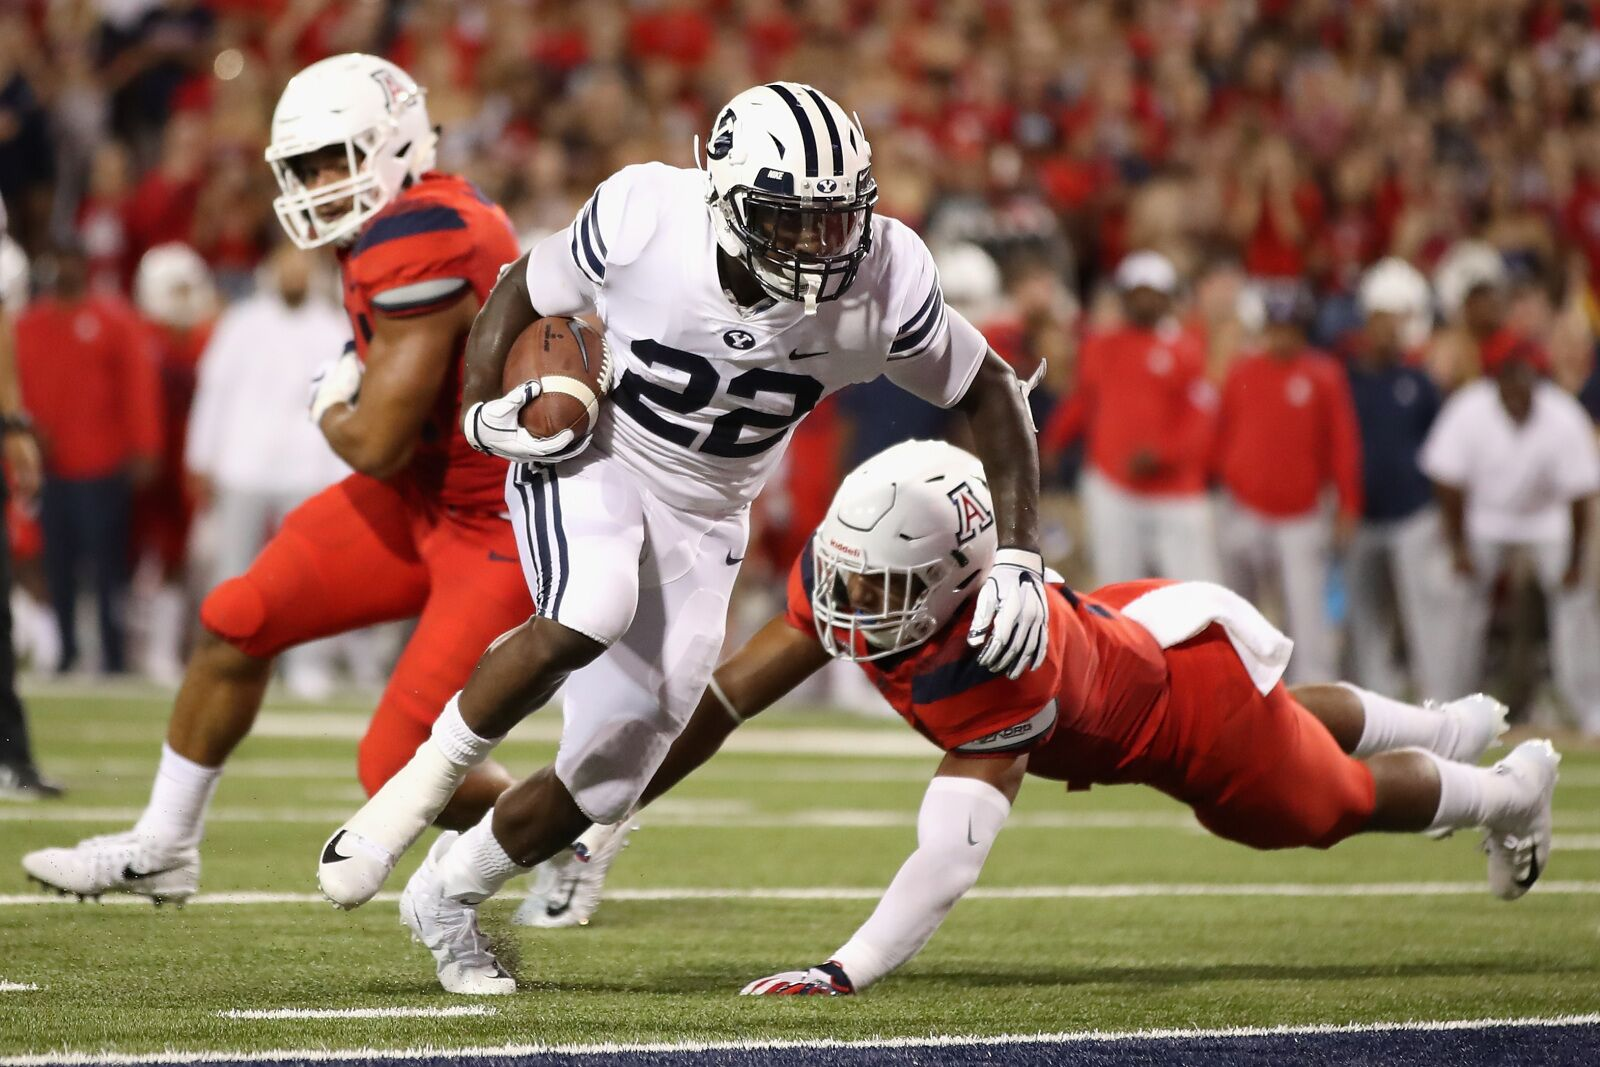 Byu Football Chunk Yardage And Two Other Keys To Beating Wisconsin